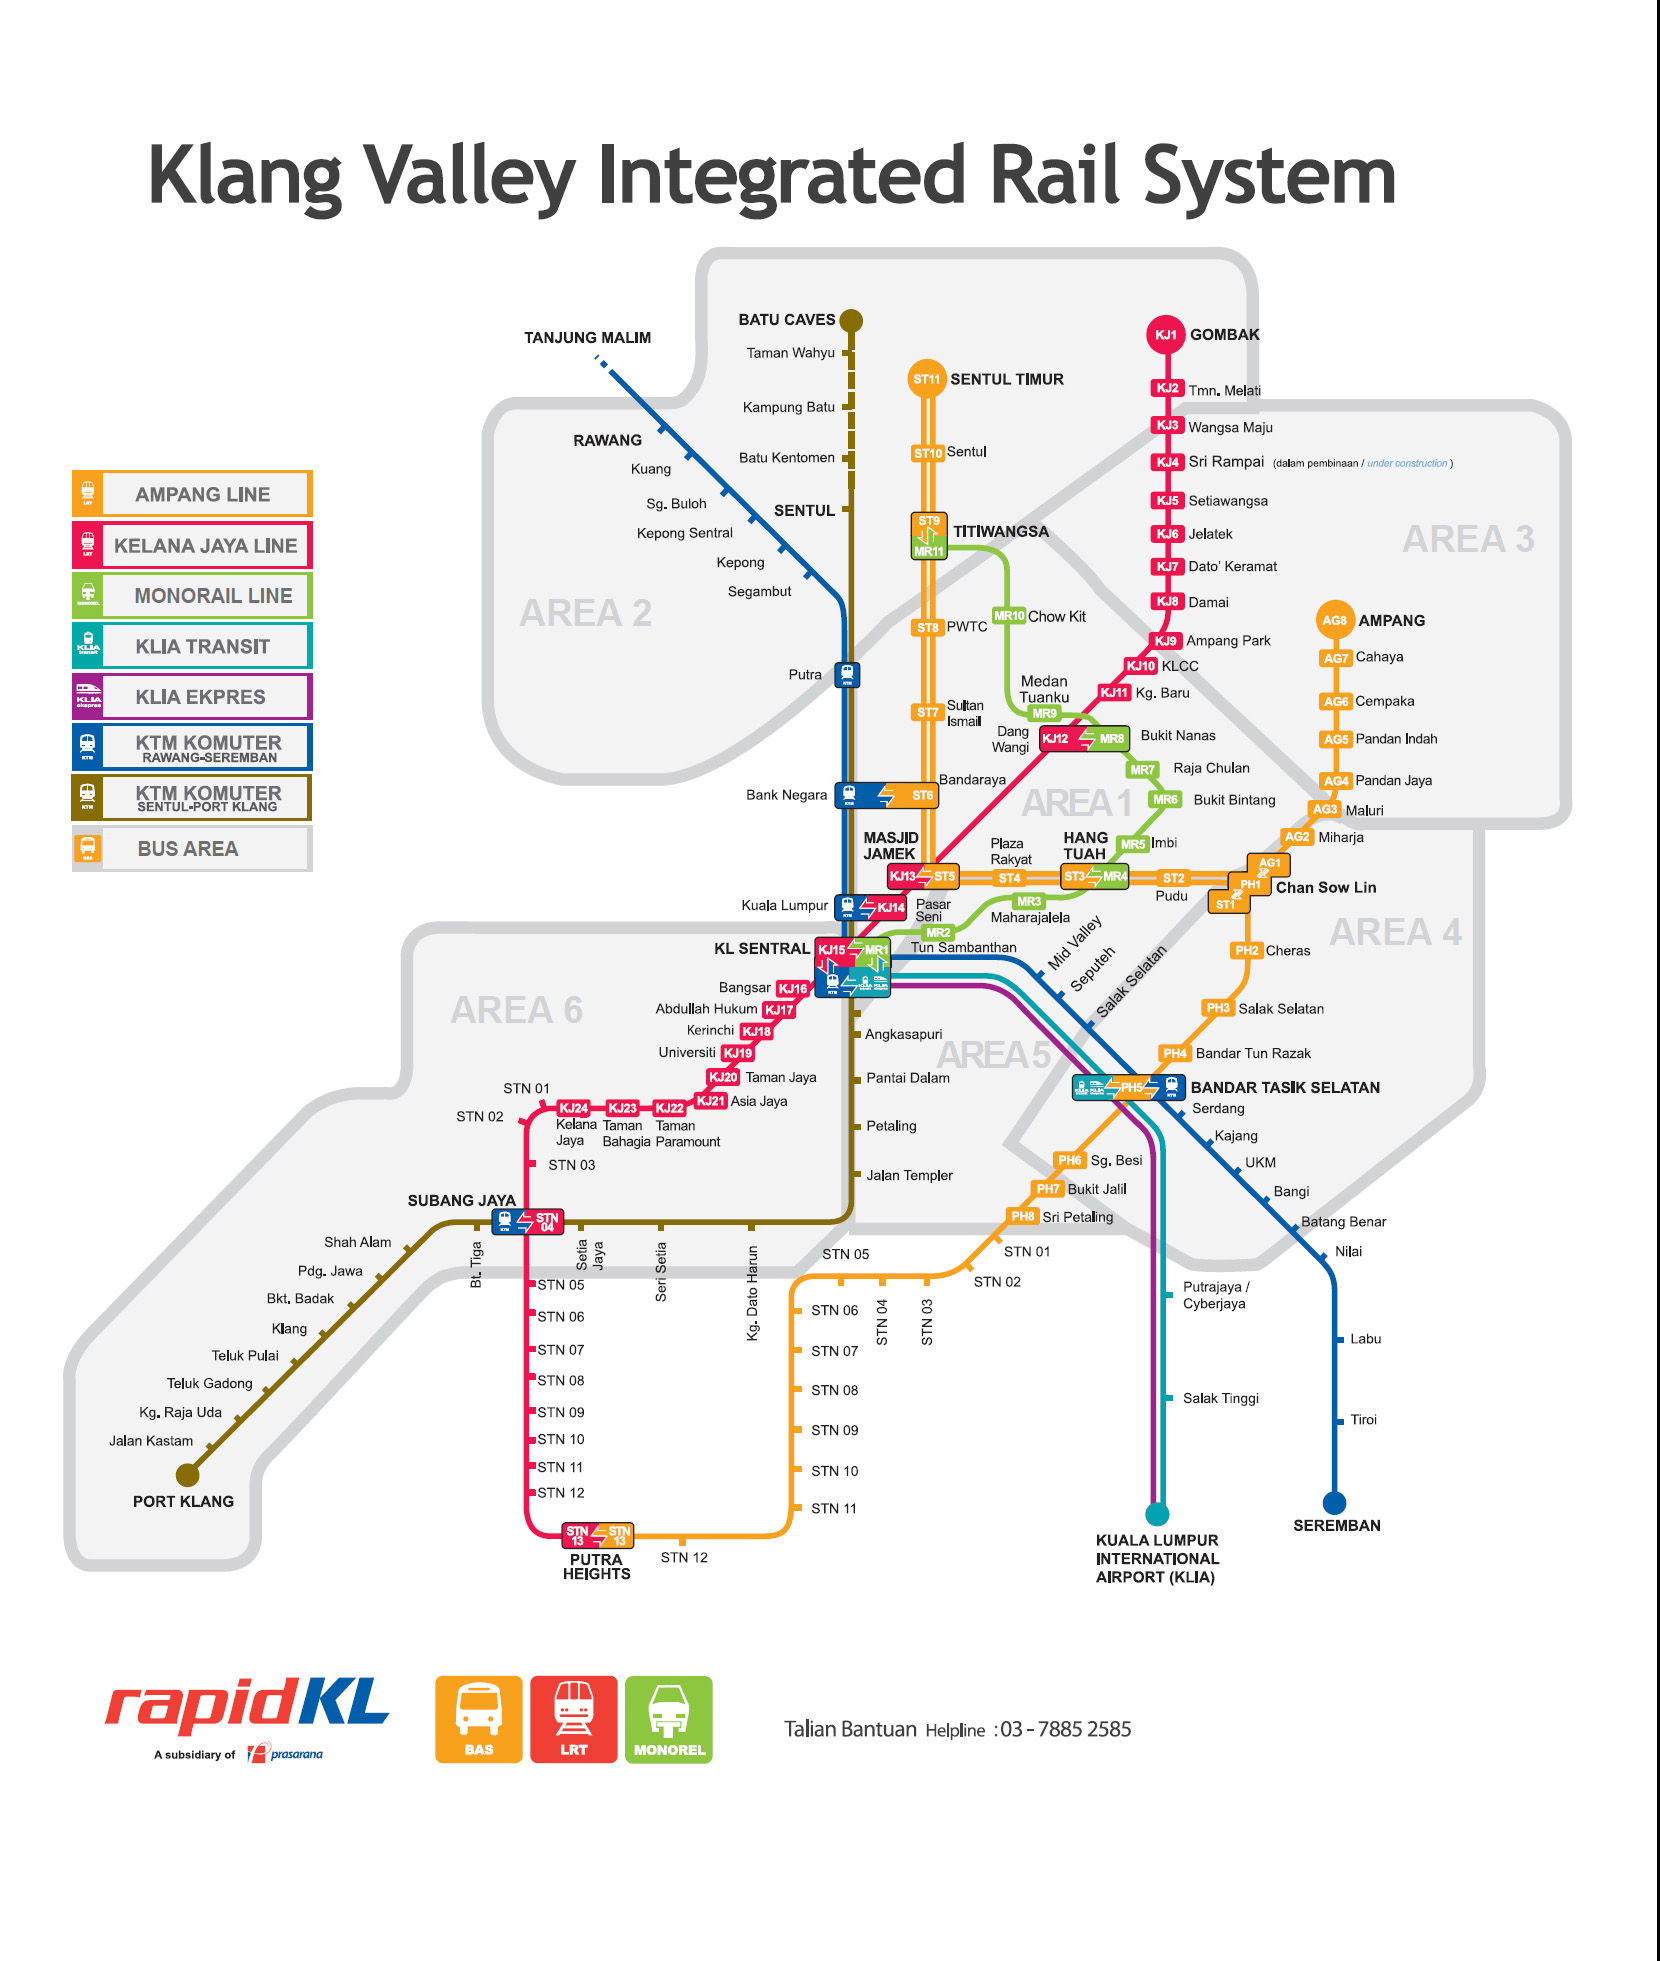 Kuala Lumpur Integrated Railway System and travel destinations